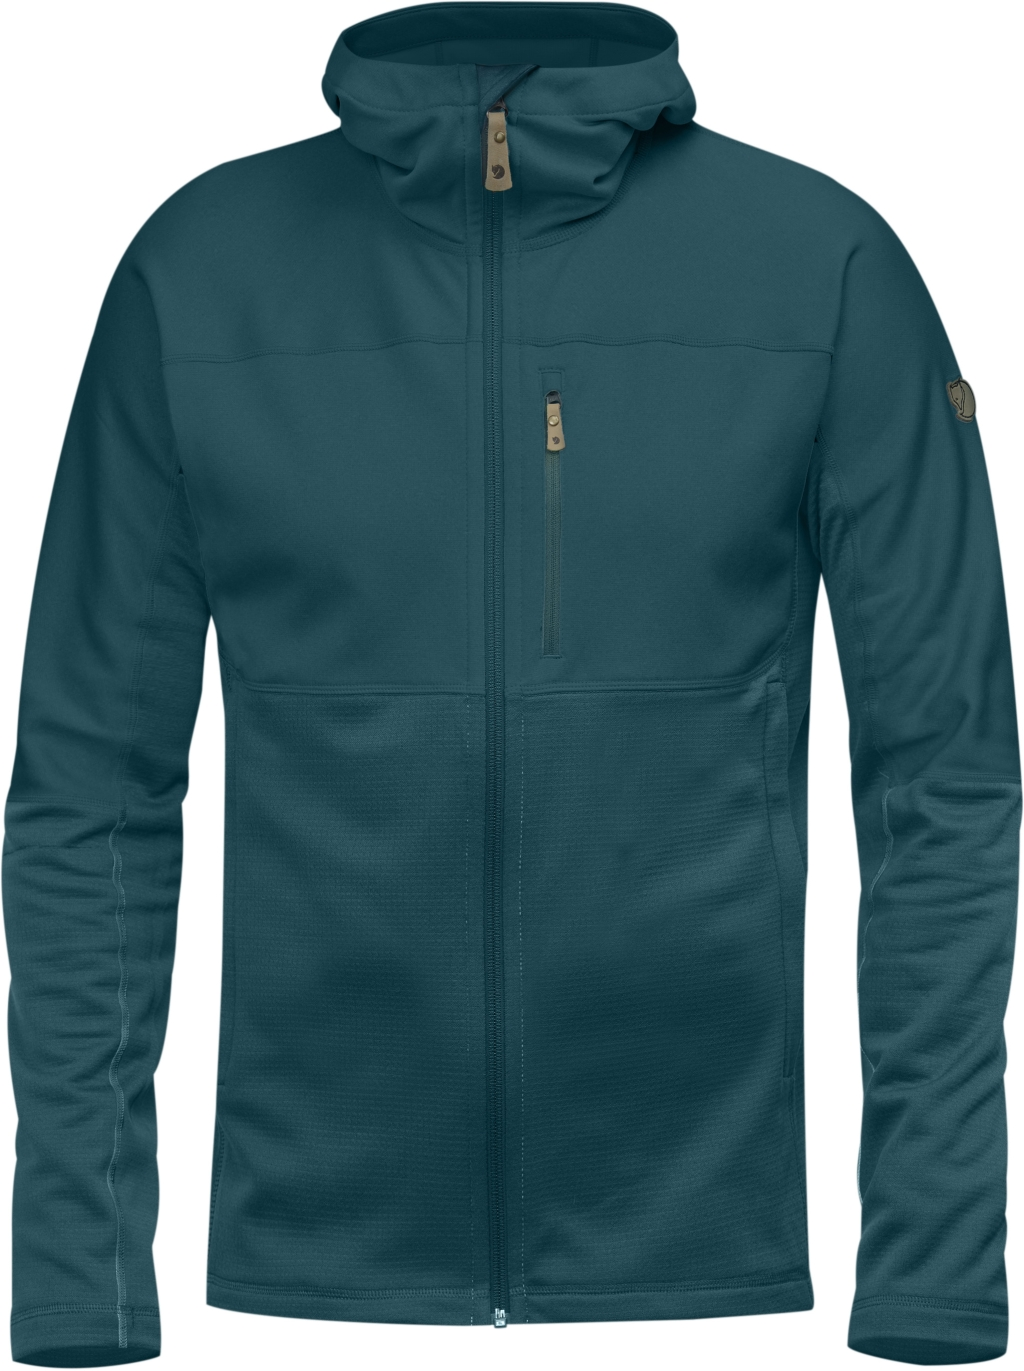 FjallRaven Abisko Trail Fleece Glacier Green-30